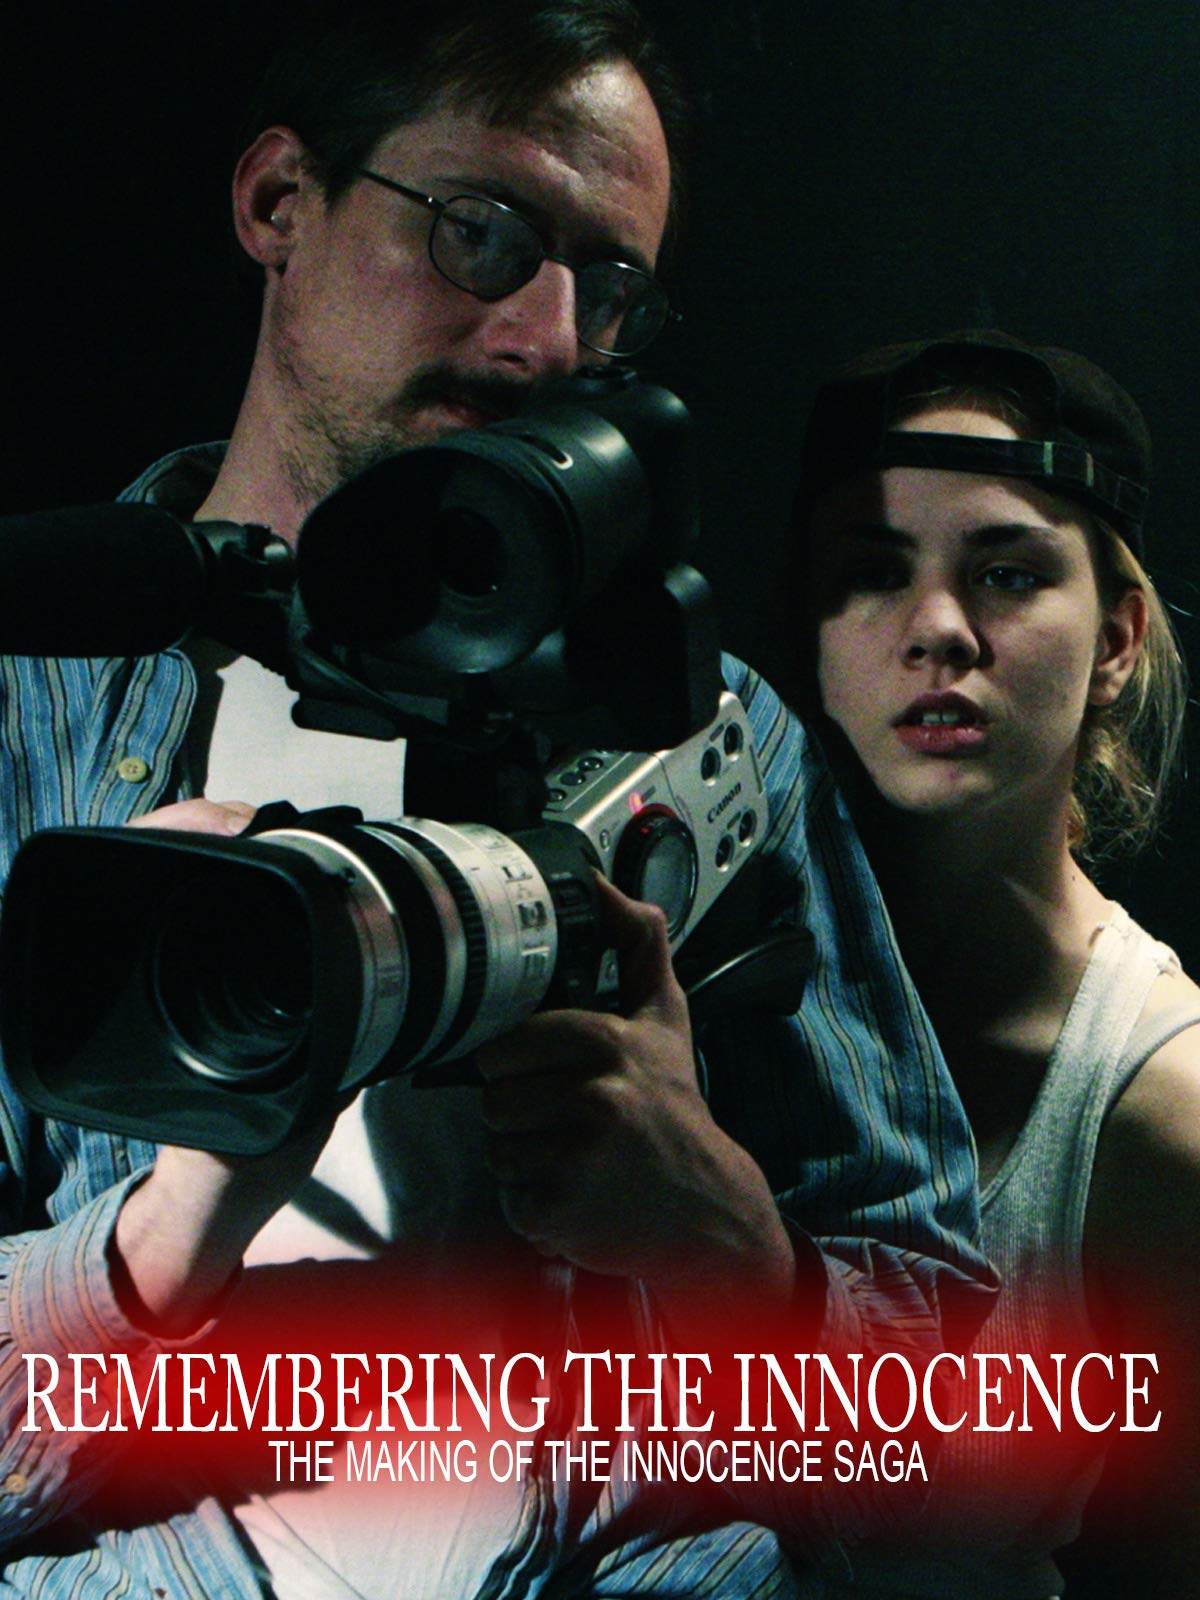 Remembering the Innocence: The Making of the Innocence Saga